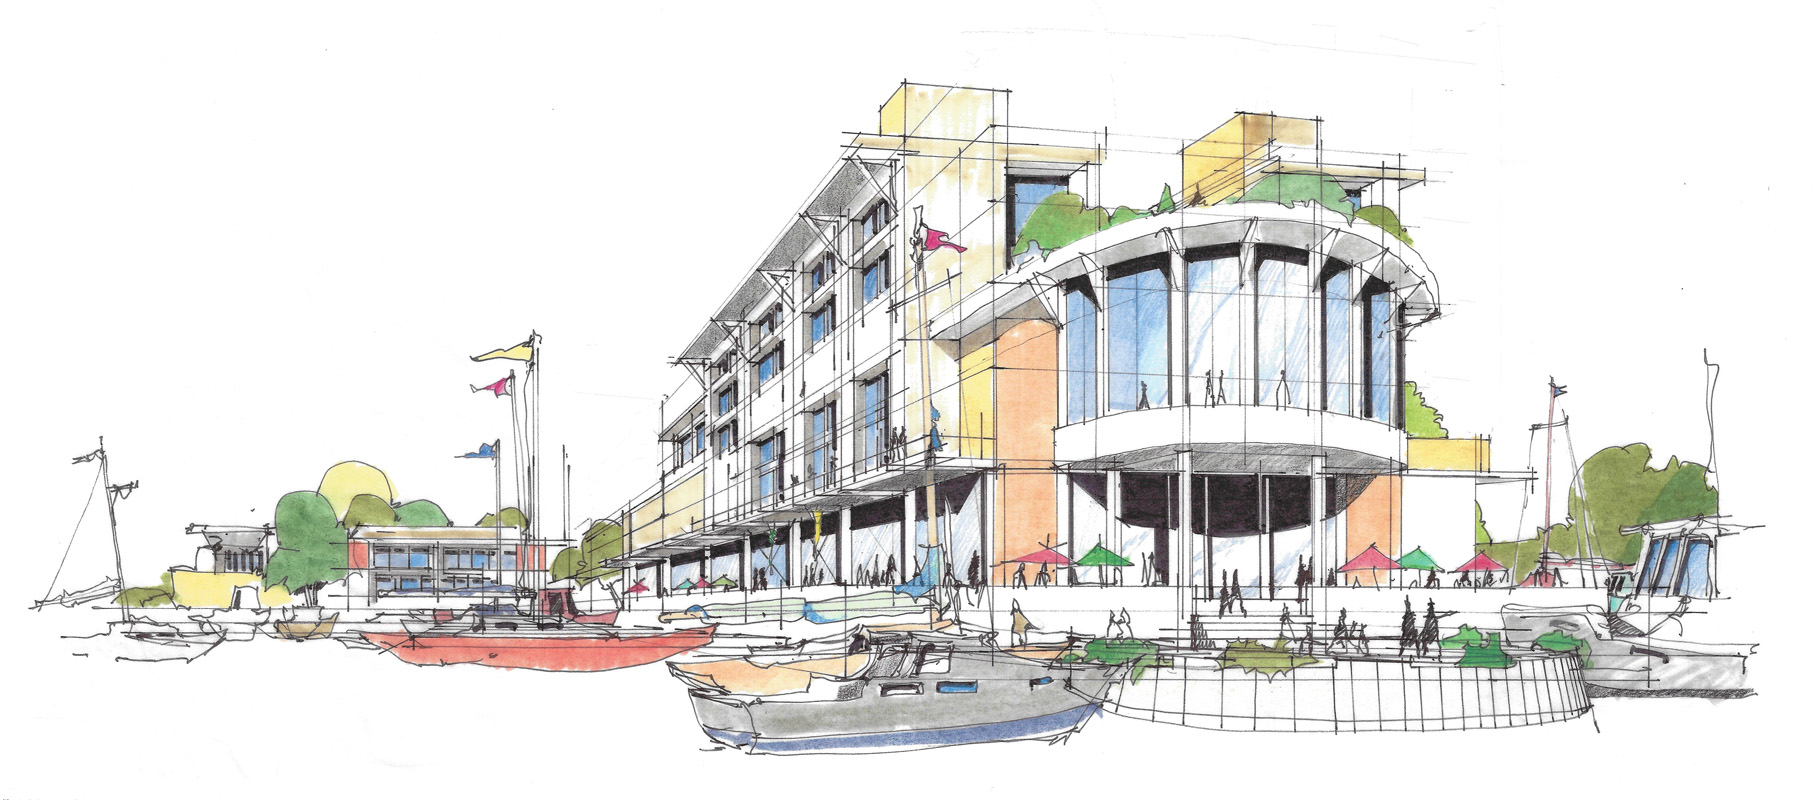 Image from Ward-Young Architecture & Planning. A centerpiece of the development would be a food and wine hall